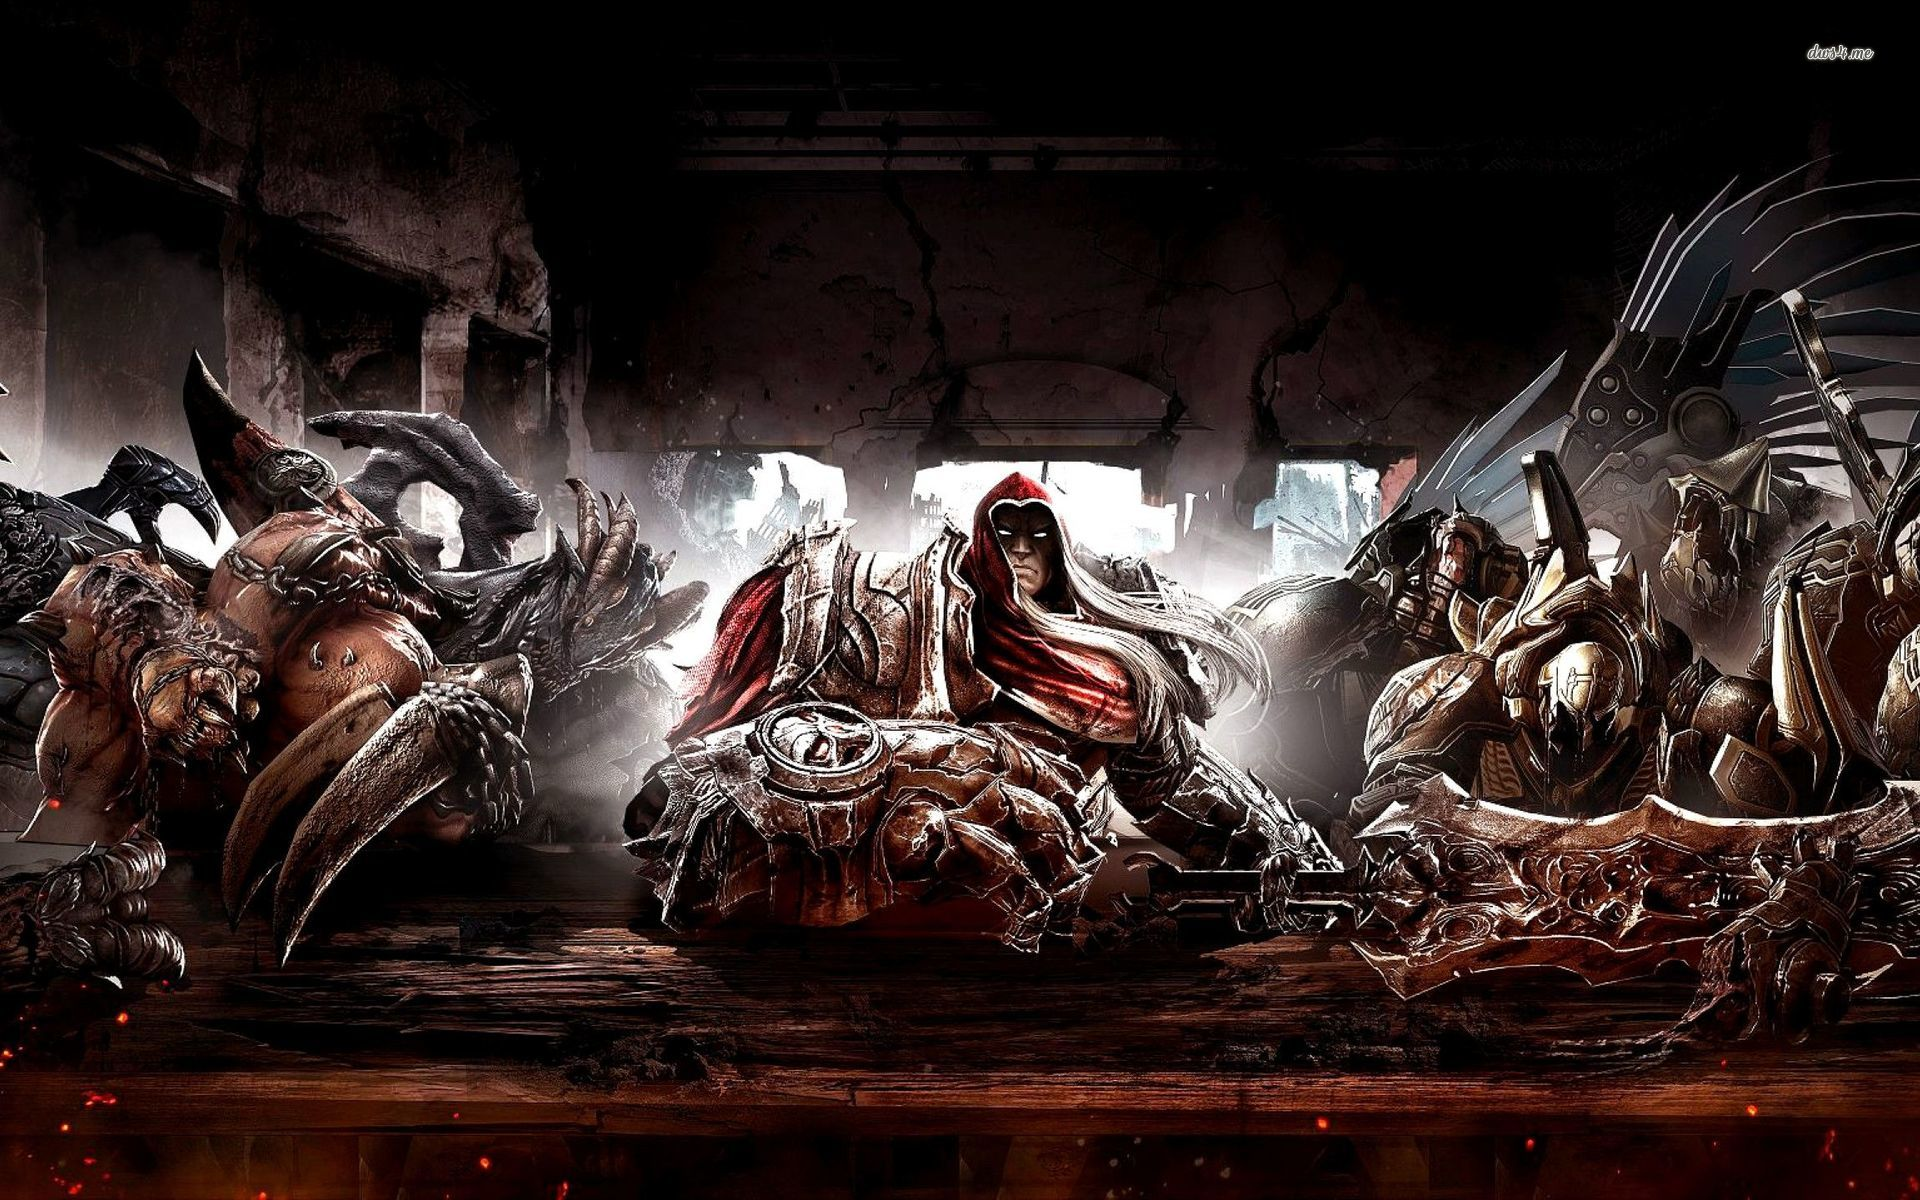 Four Horsemen at the table in Darksiders wallpaper   Game wallpapers 1920x1200